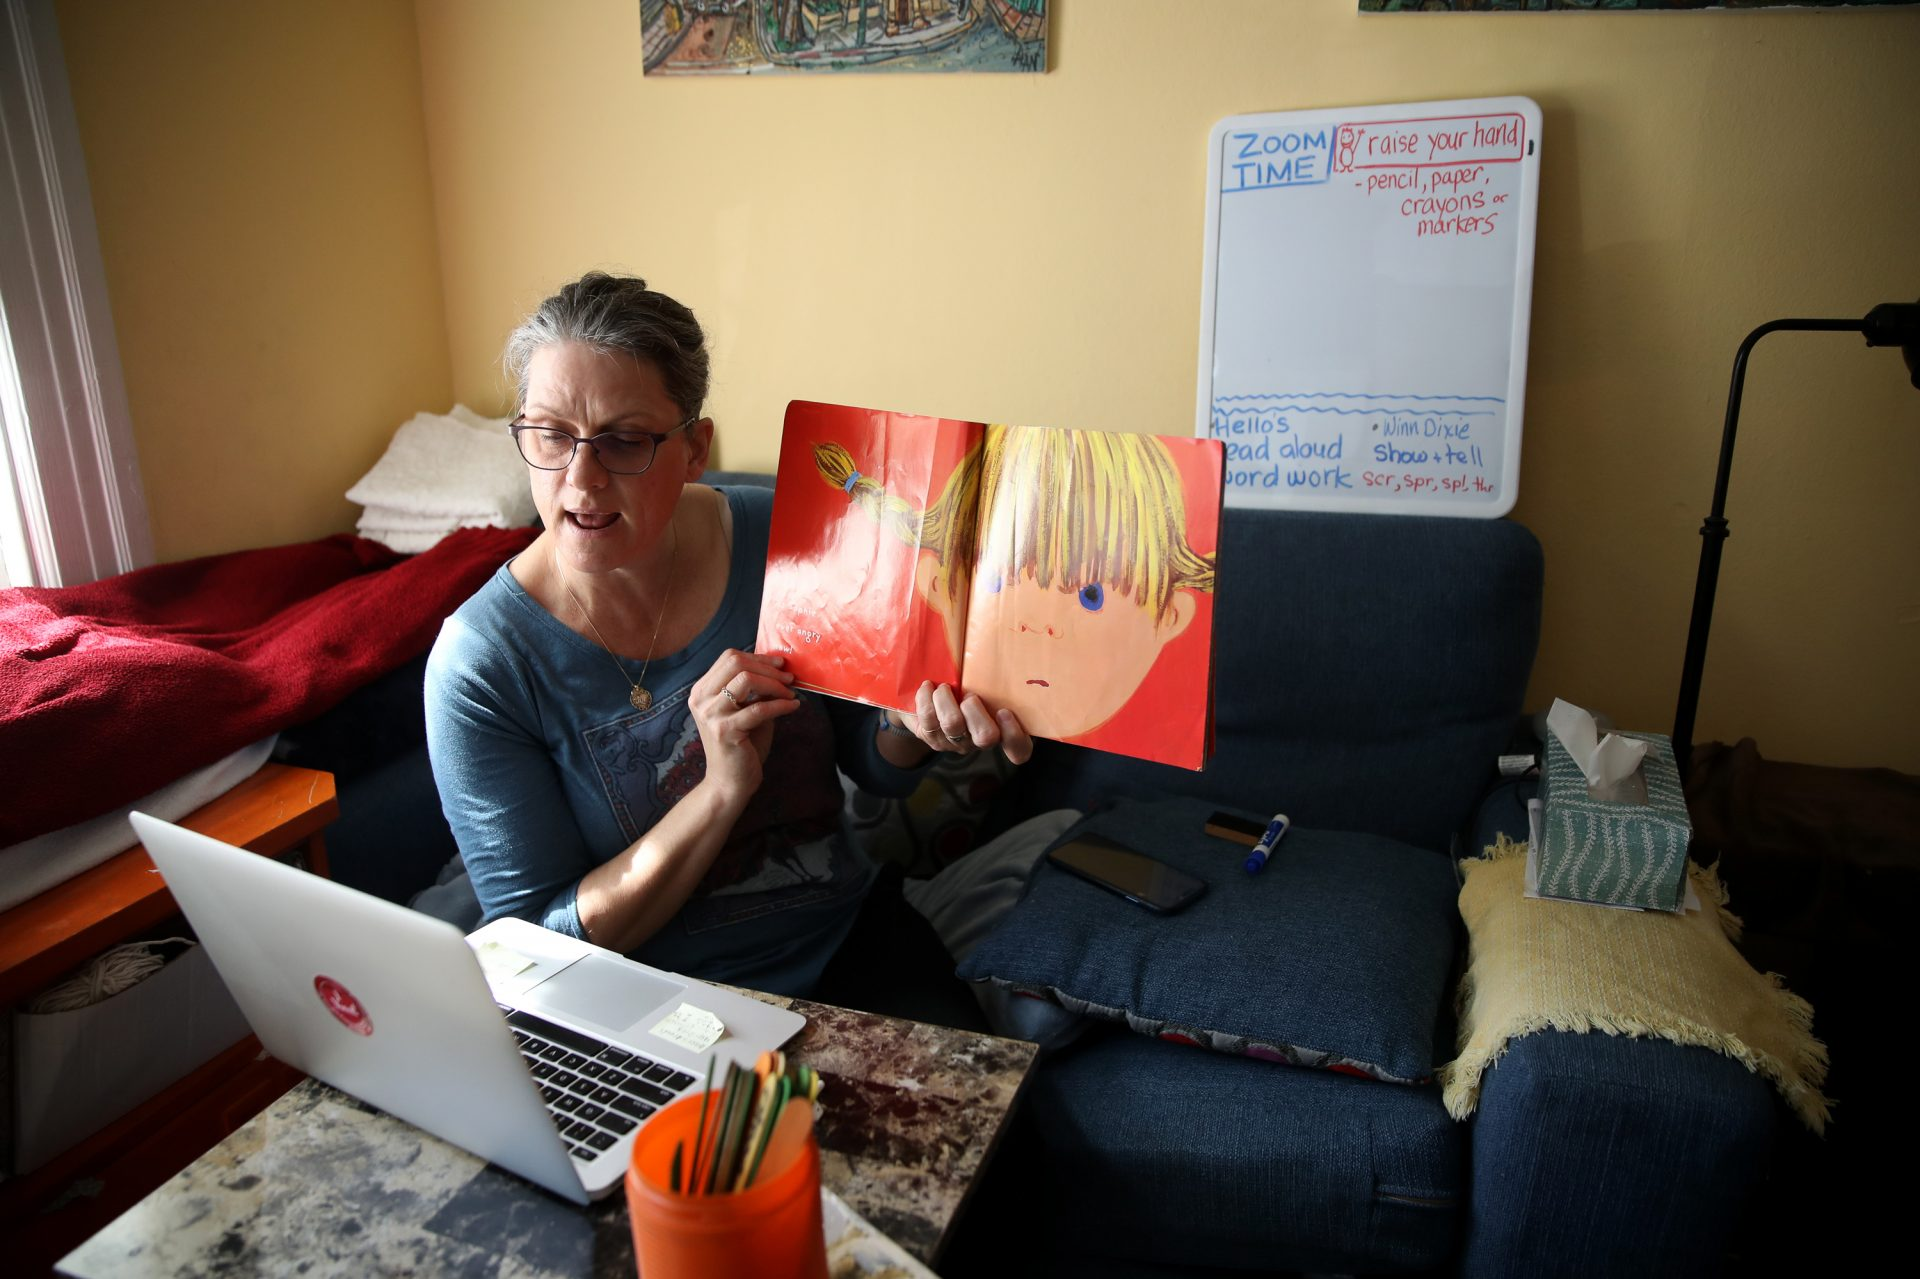 Leanne Francis, first grade teacher at Harvey Milk Civil Rights Academy, conducts an online class from her living room on March 20, 2020 in San Francisco, Calif.With schools closed across theU.S., teachers are holding some classes online.